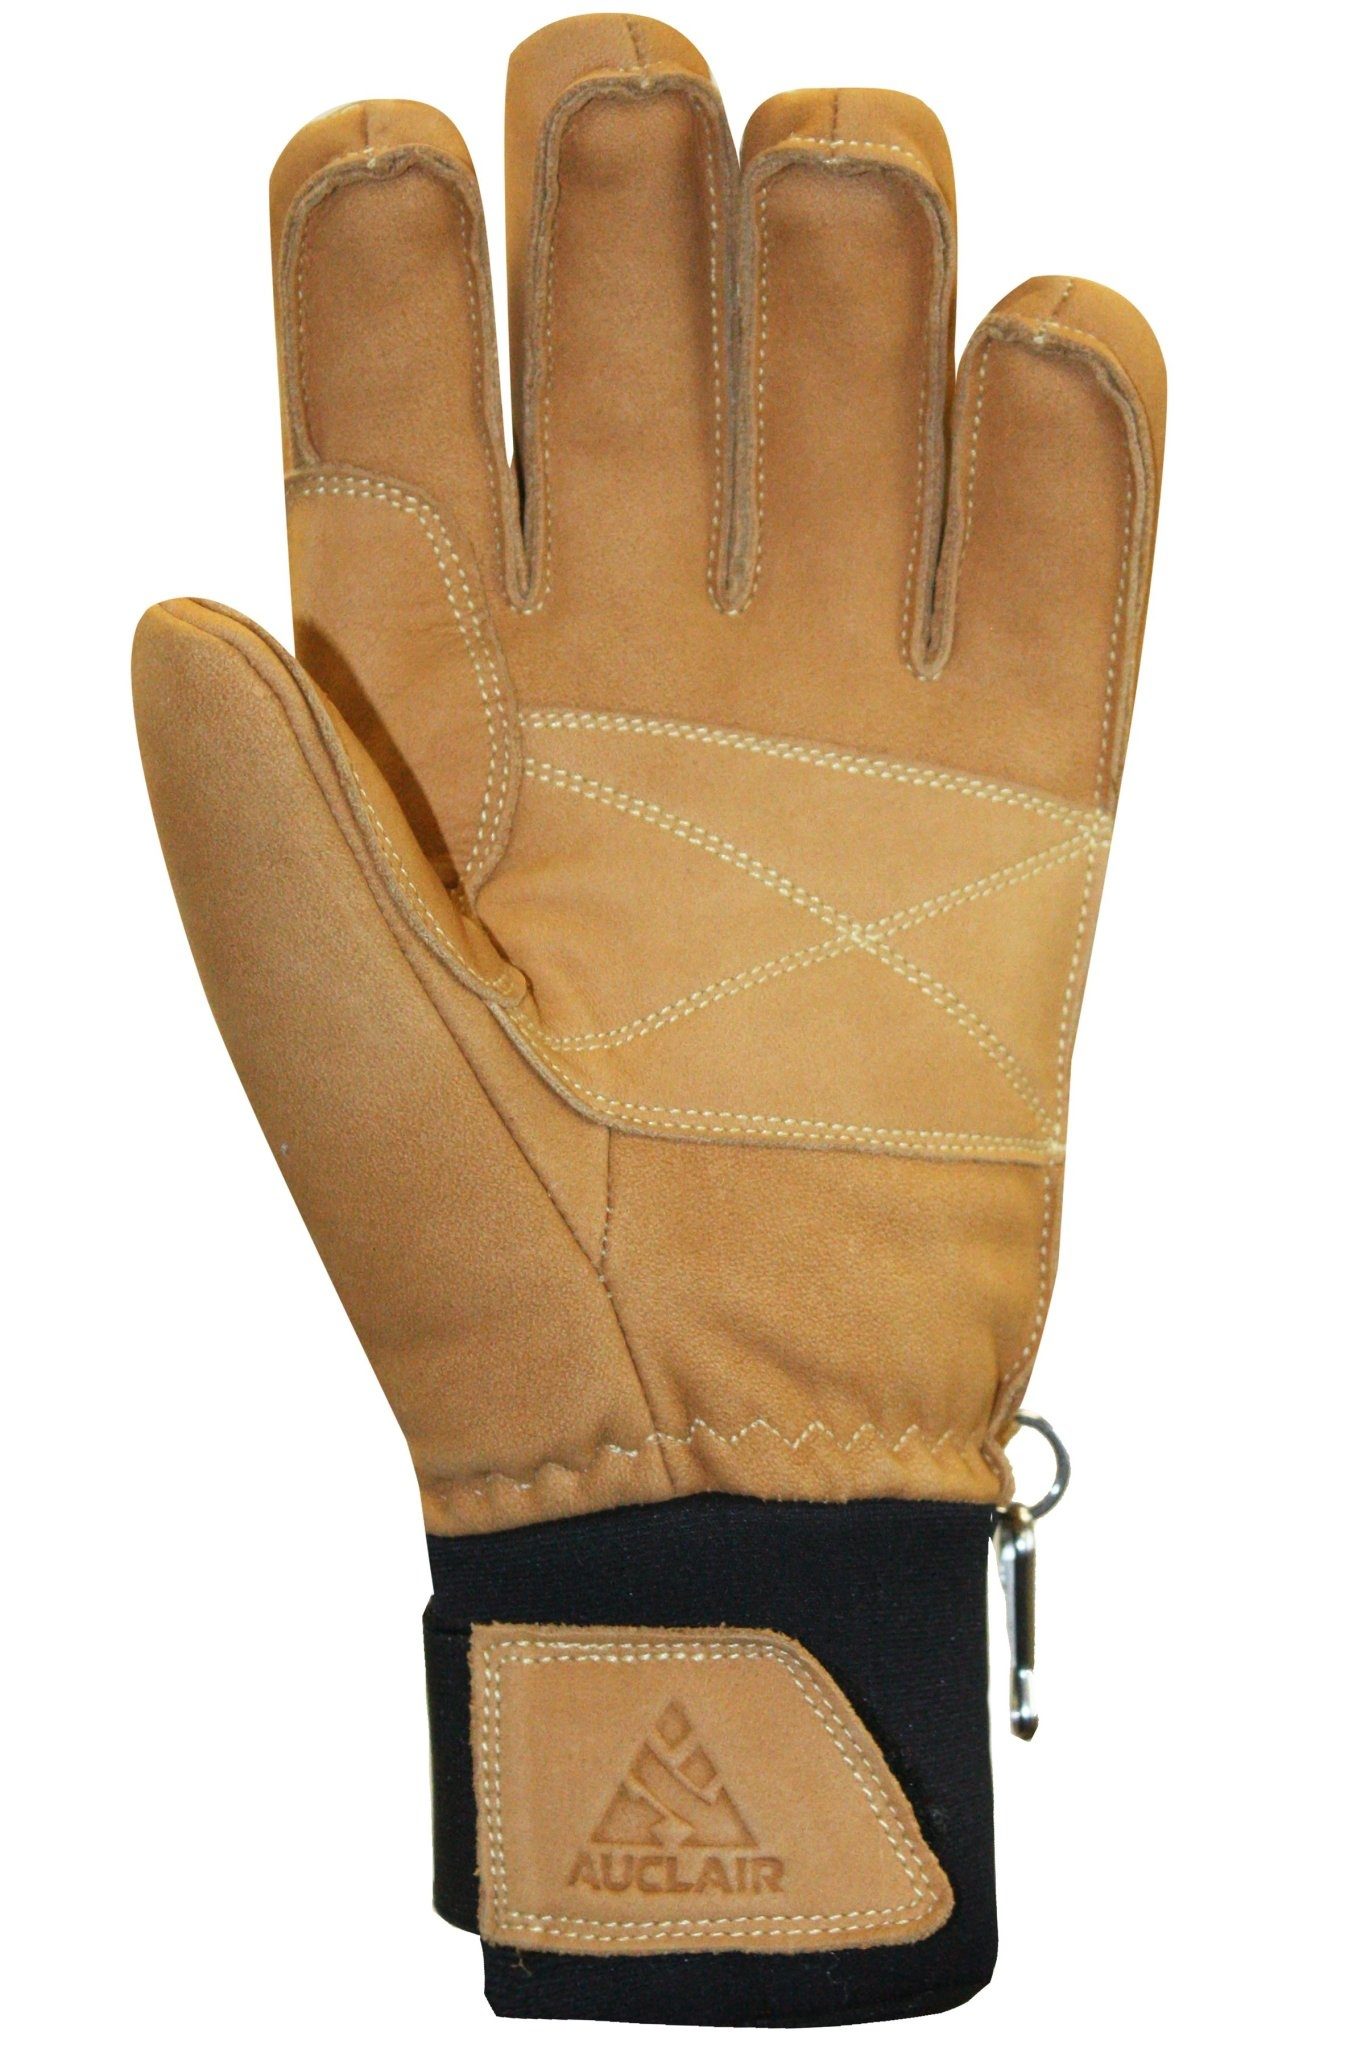 Auclair Auclair Men's Eco Racer Glove